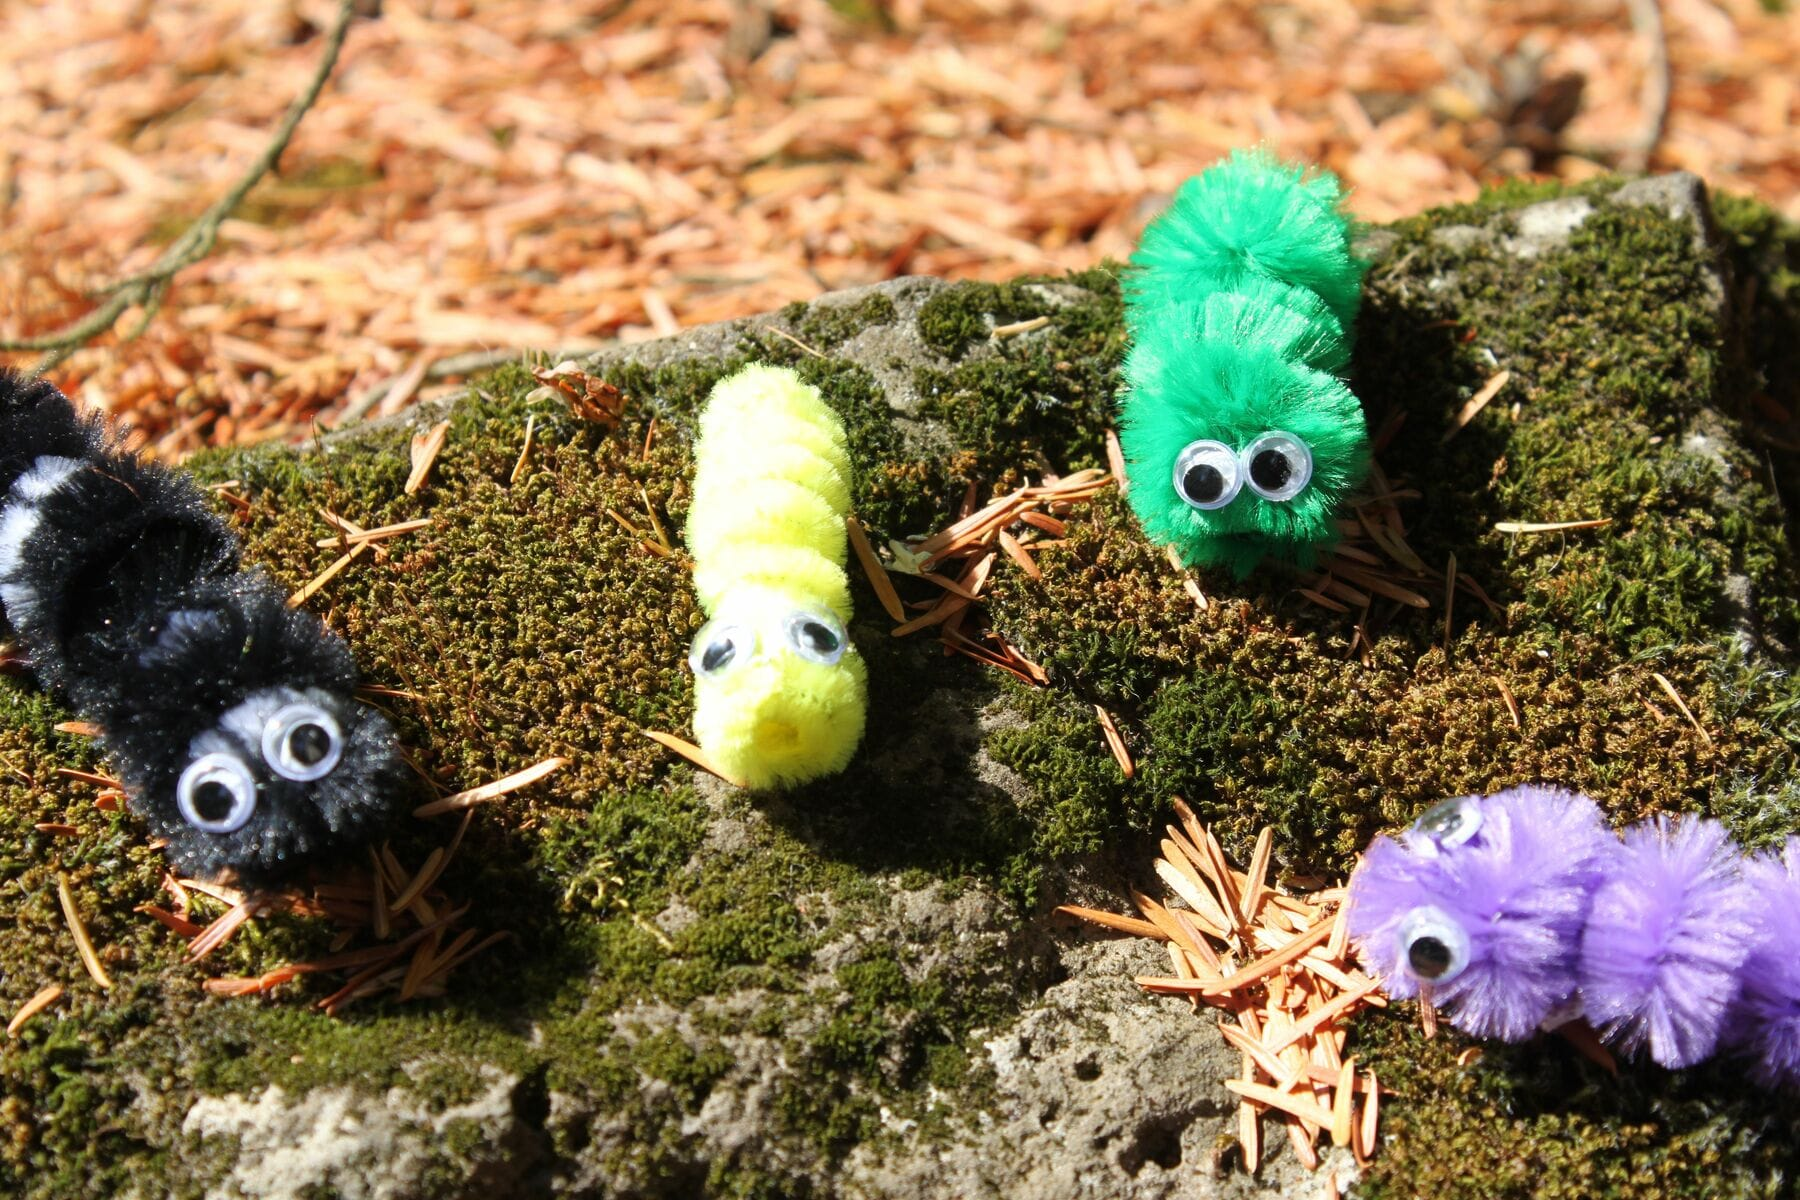 Pipe Cleaner Caterpillars (Craft from June 8 2019)